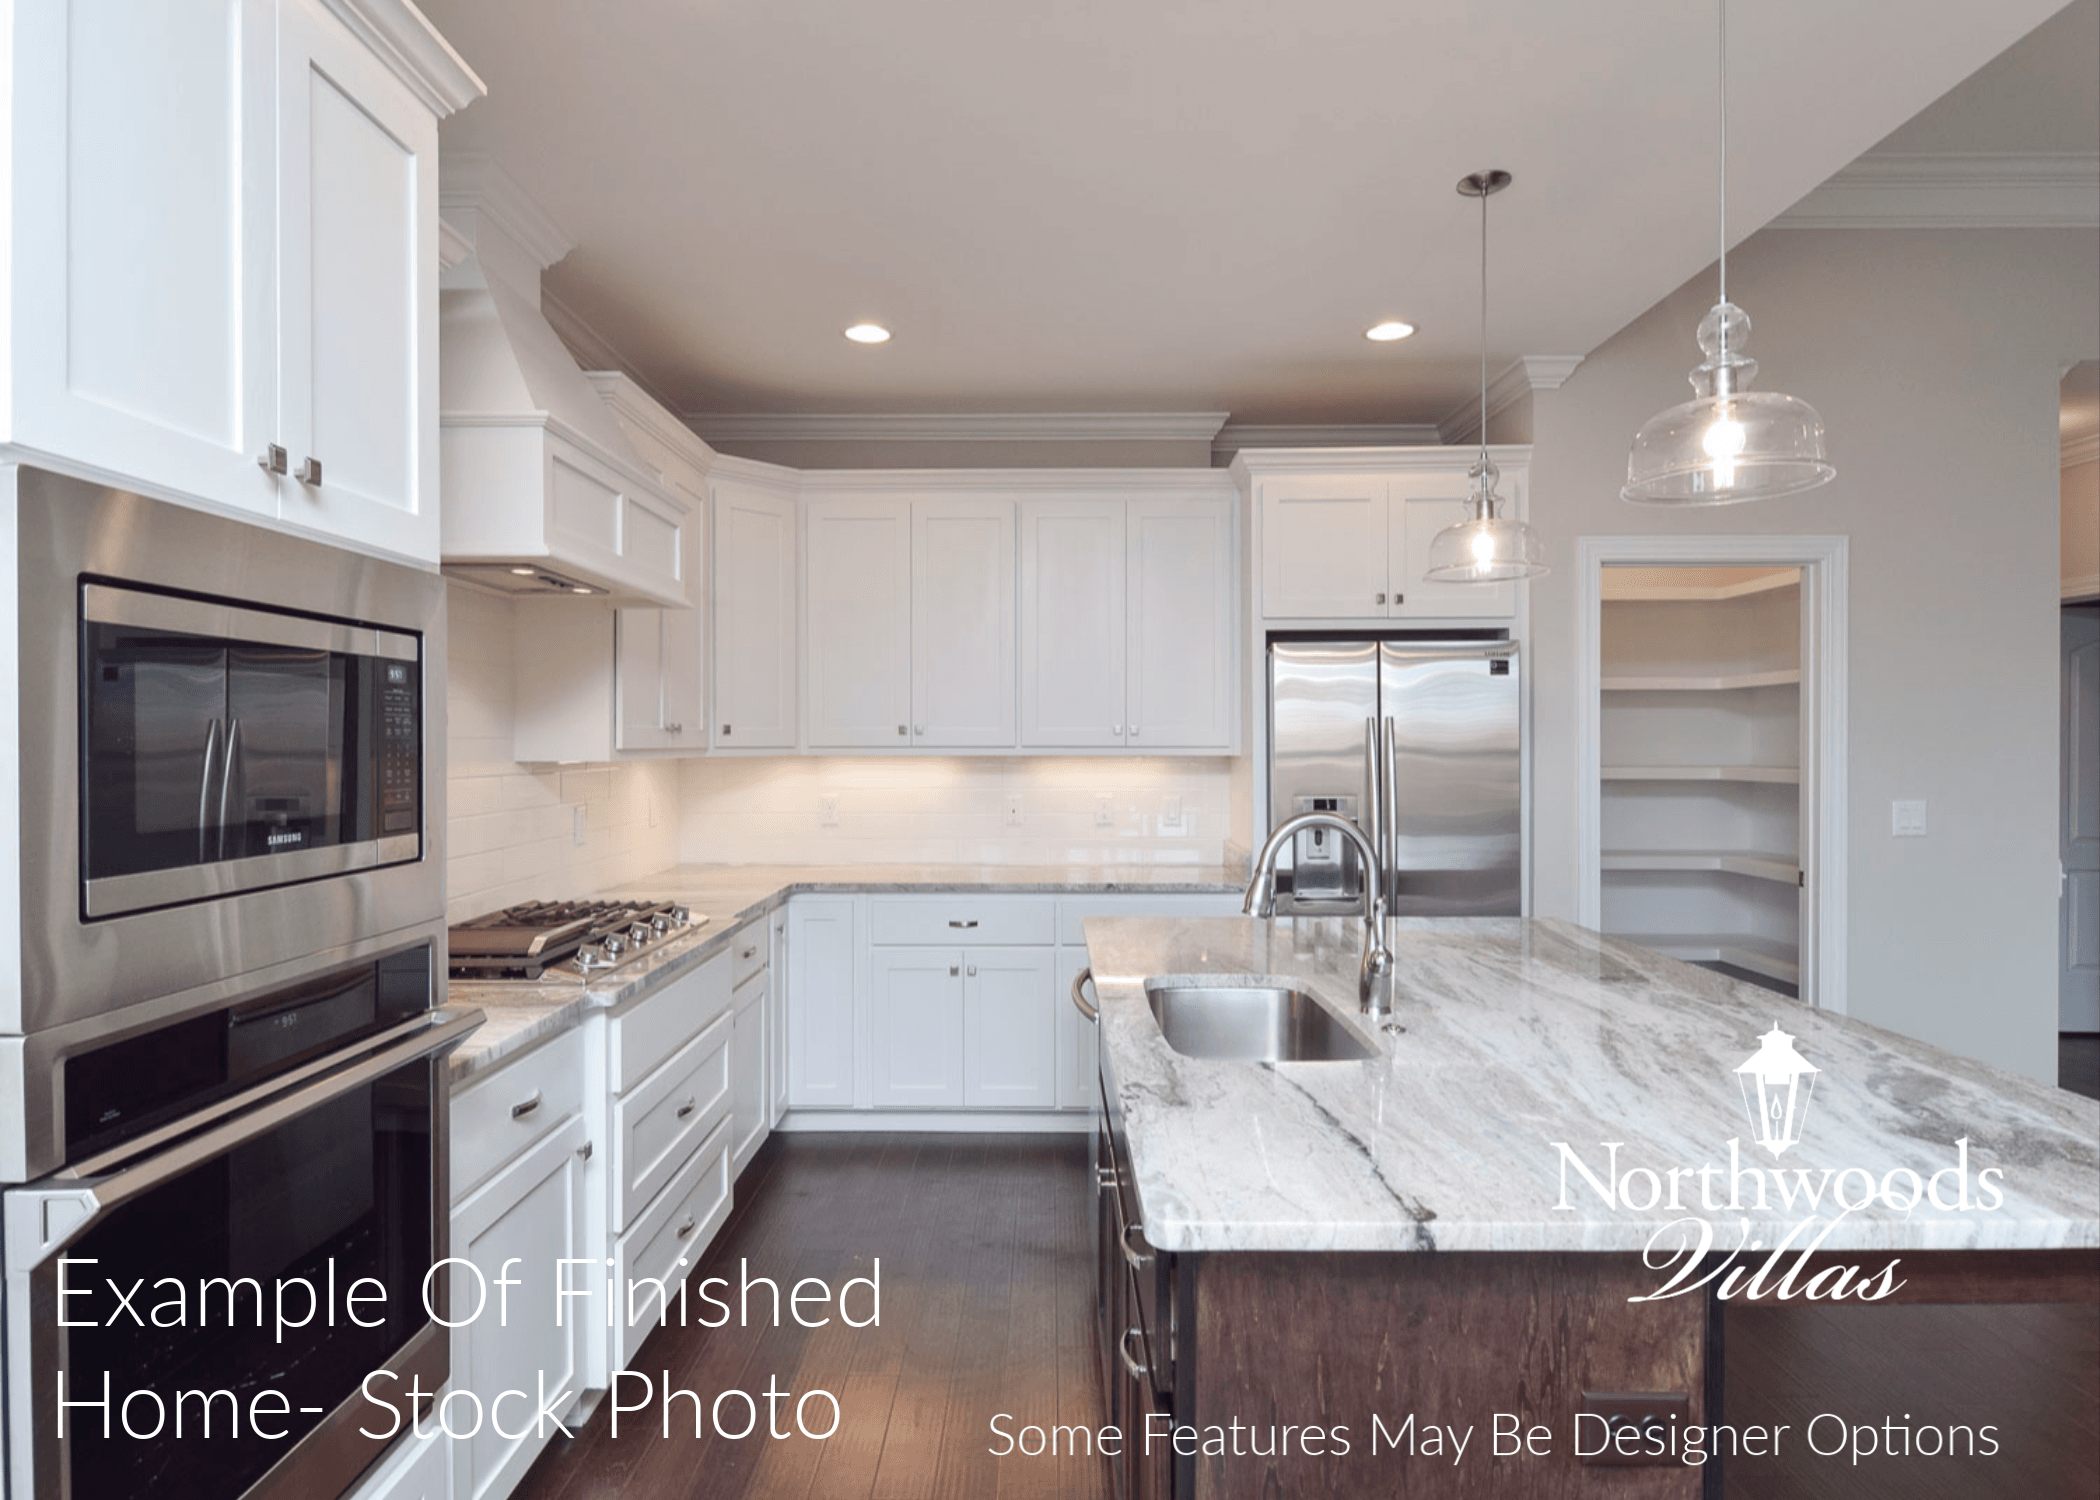 Kitchen featured in the Northwood Villas-Sawgrass II By Executive Construction Homes